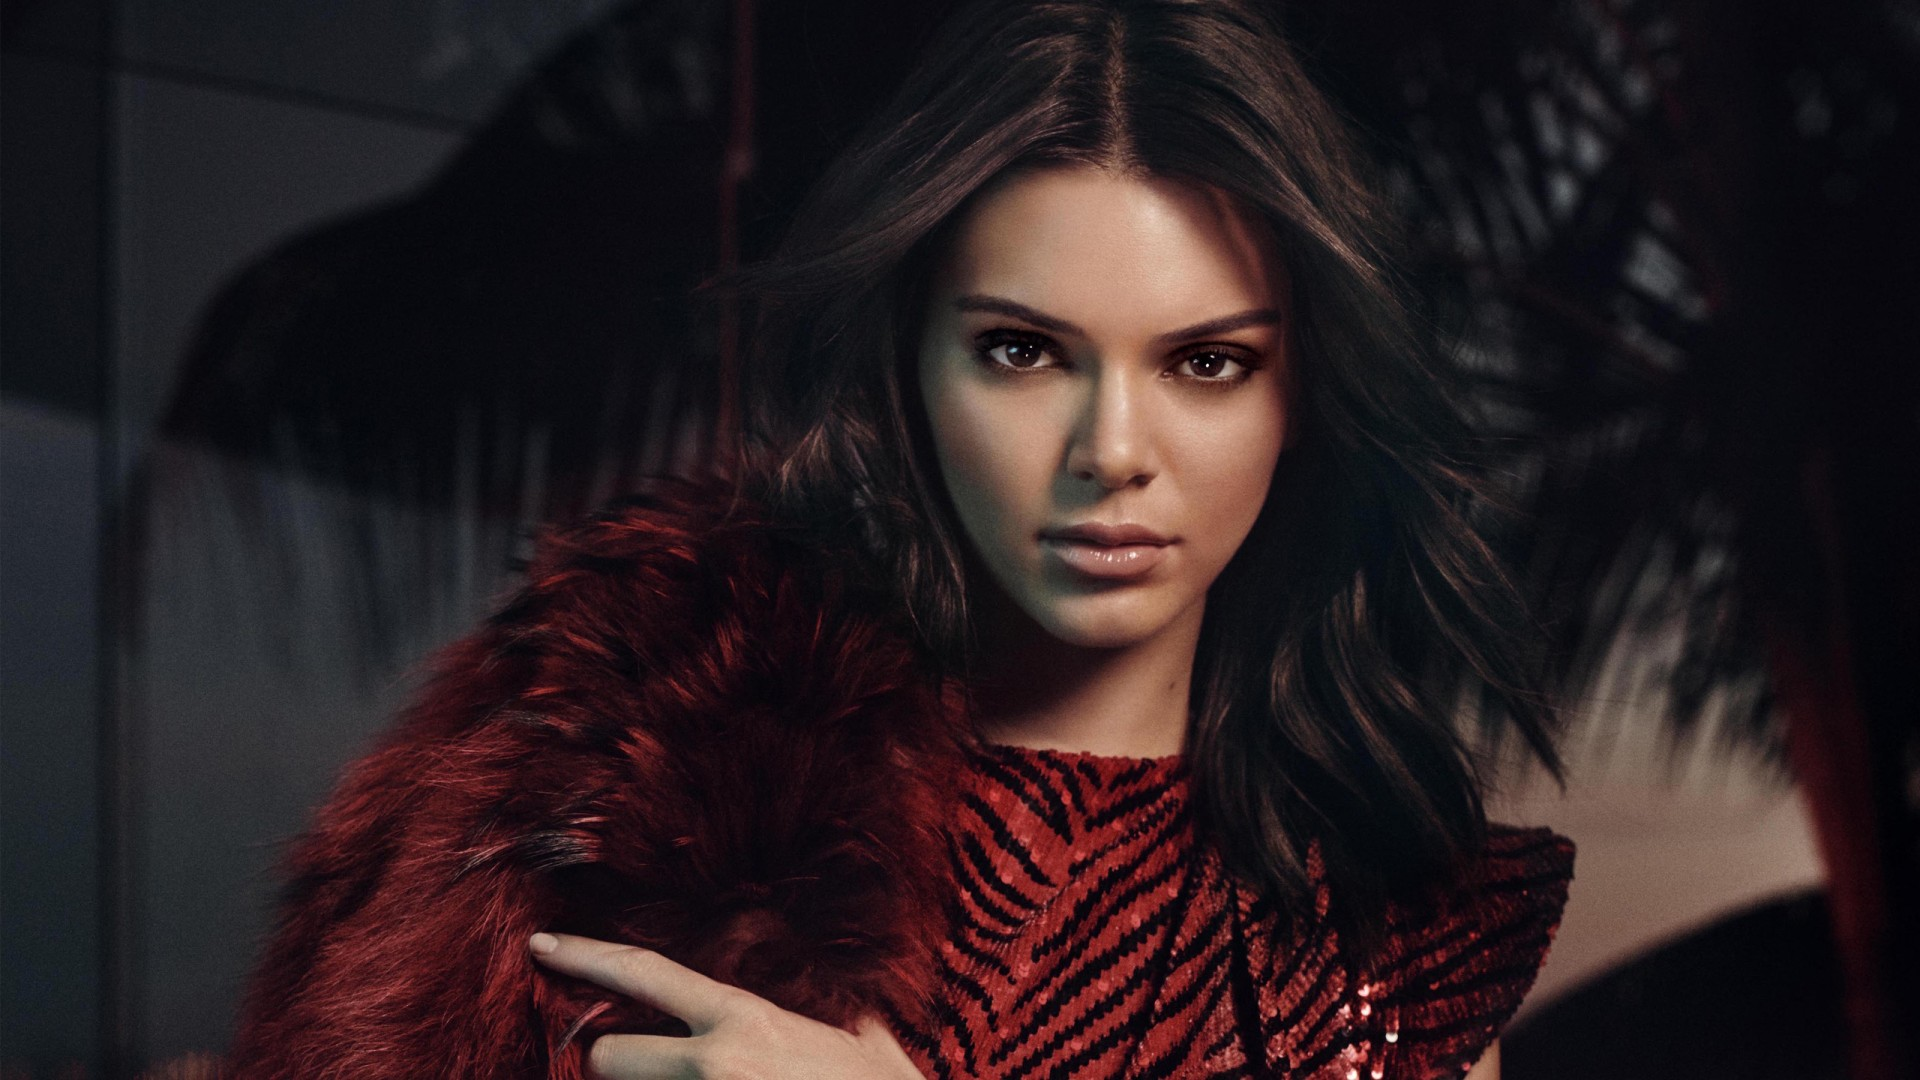 Most Beautiful Nature Wallpapers 3d Kendall Jenner For Daniel Wellington 2017 Wallpapers Hd